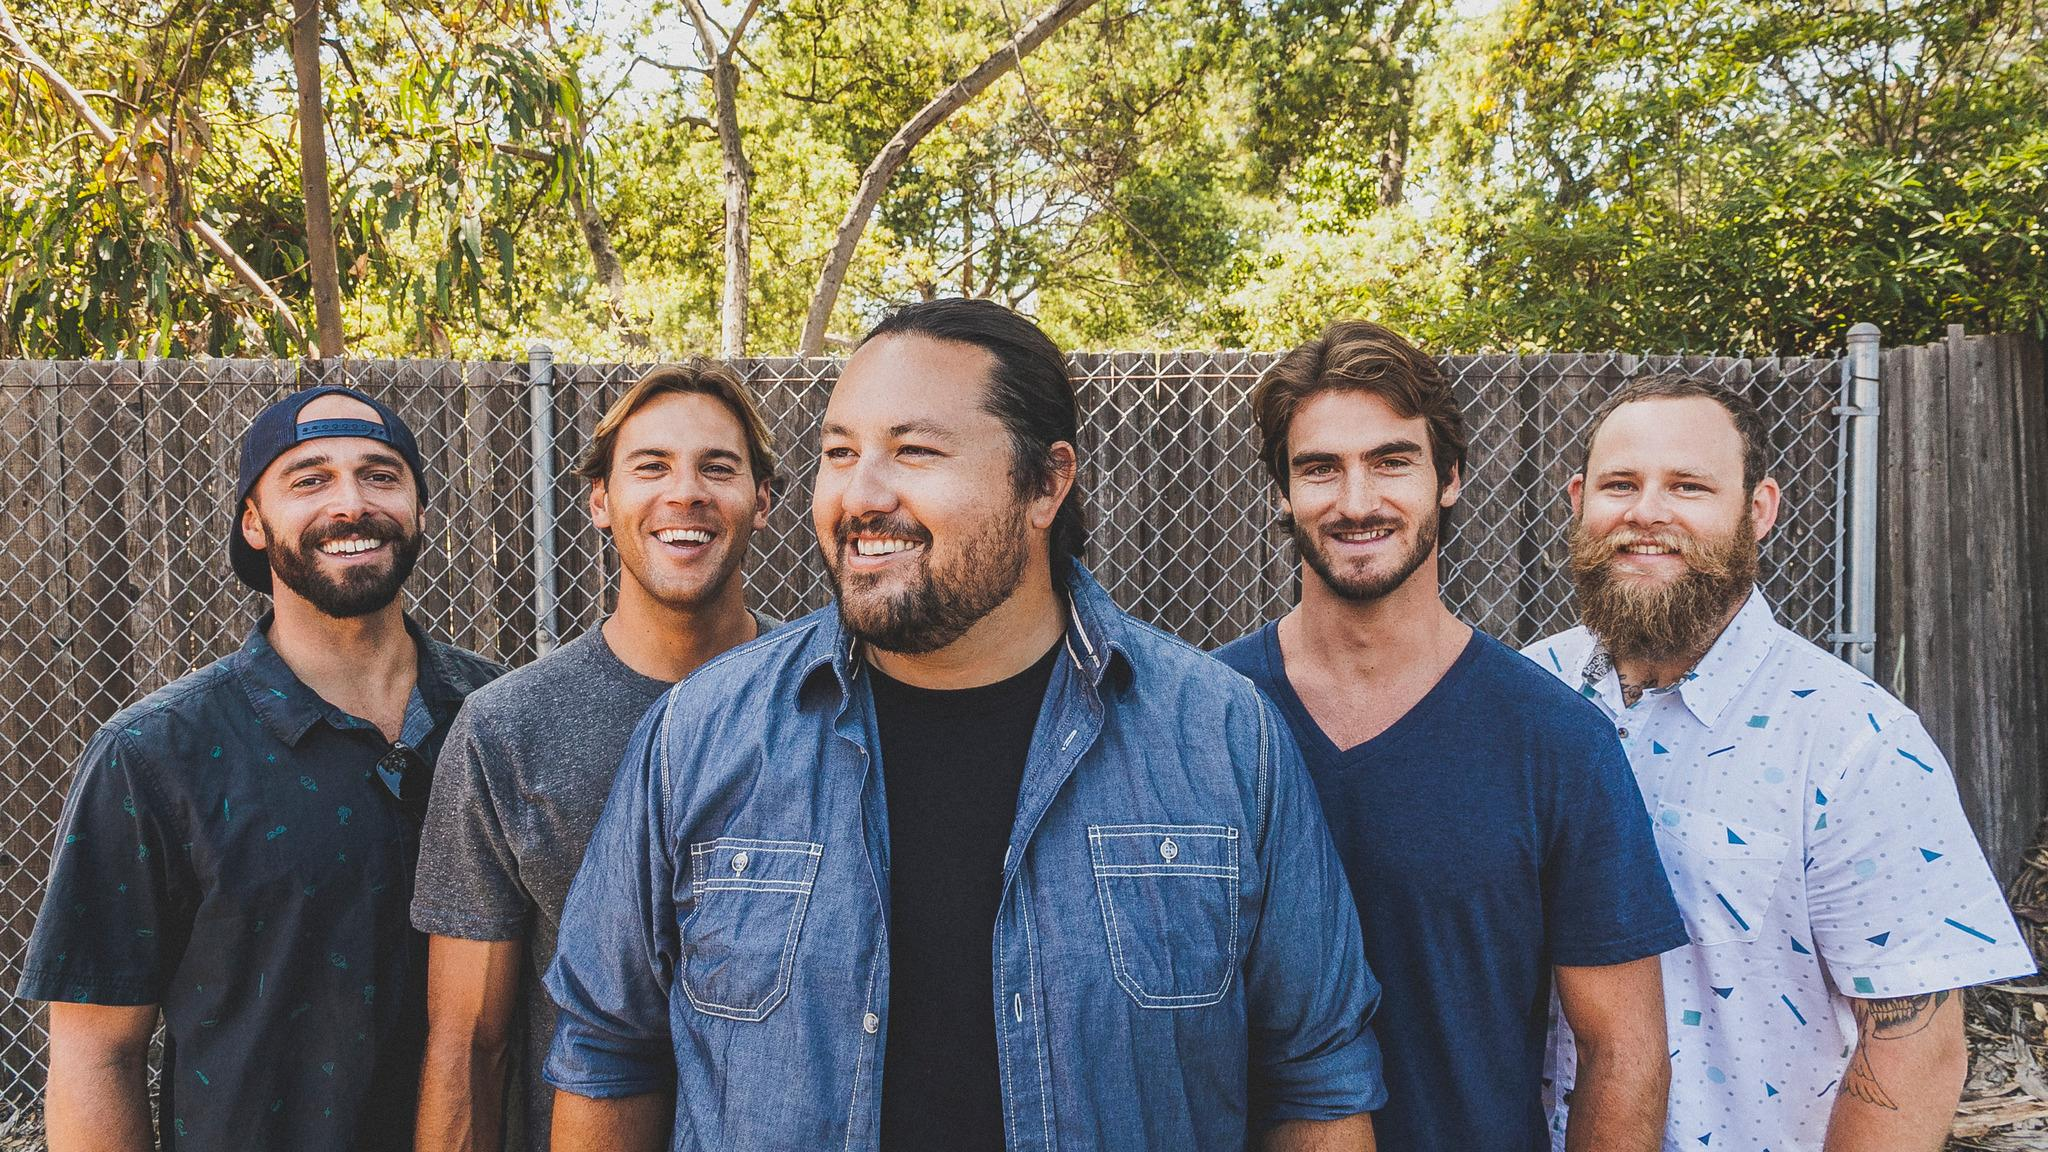 Iration - Meet & Greet Packages at Senator Theater